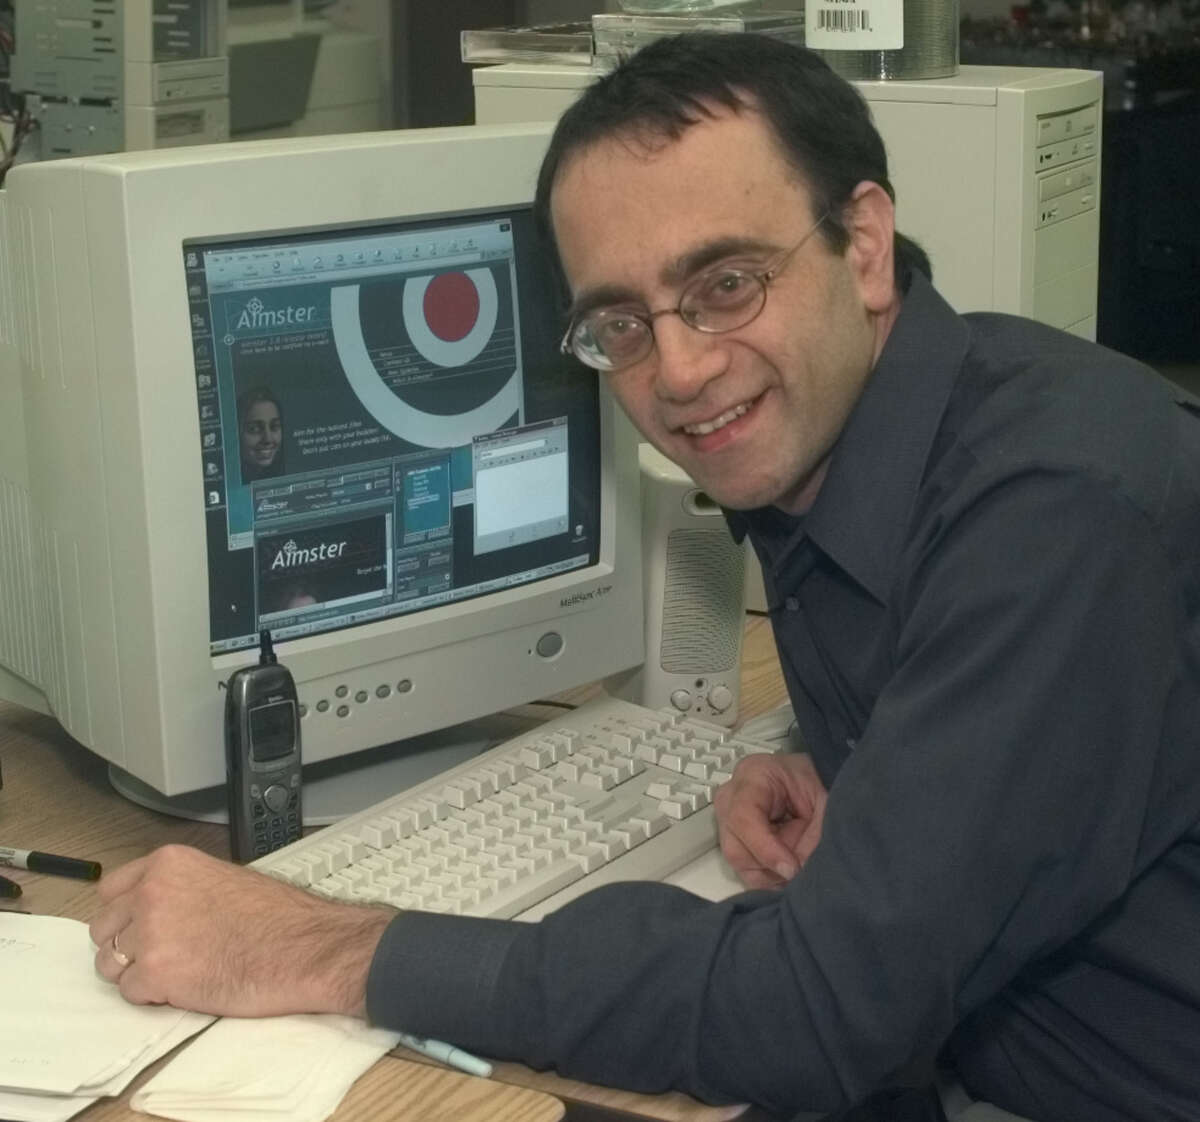 ADVANCE FOR WEEKEND, DEC. 30-31-- John Deep, a founder of Aimster, poses with the Aimster program at Aimster offices in Albany, N.Y., Thursday, Dec. 21, 2000. The program enables users to exchange files using instant messaging.